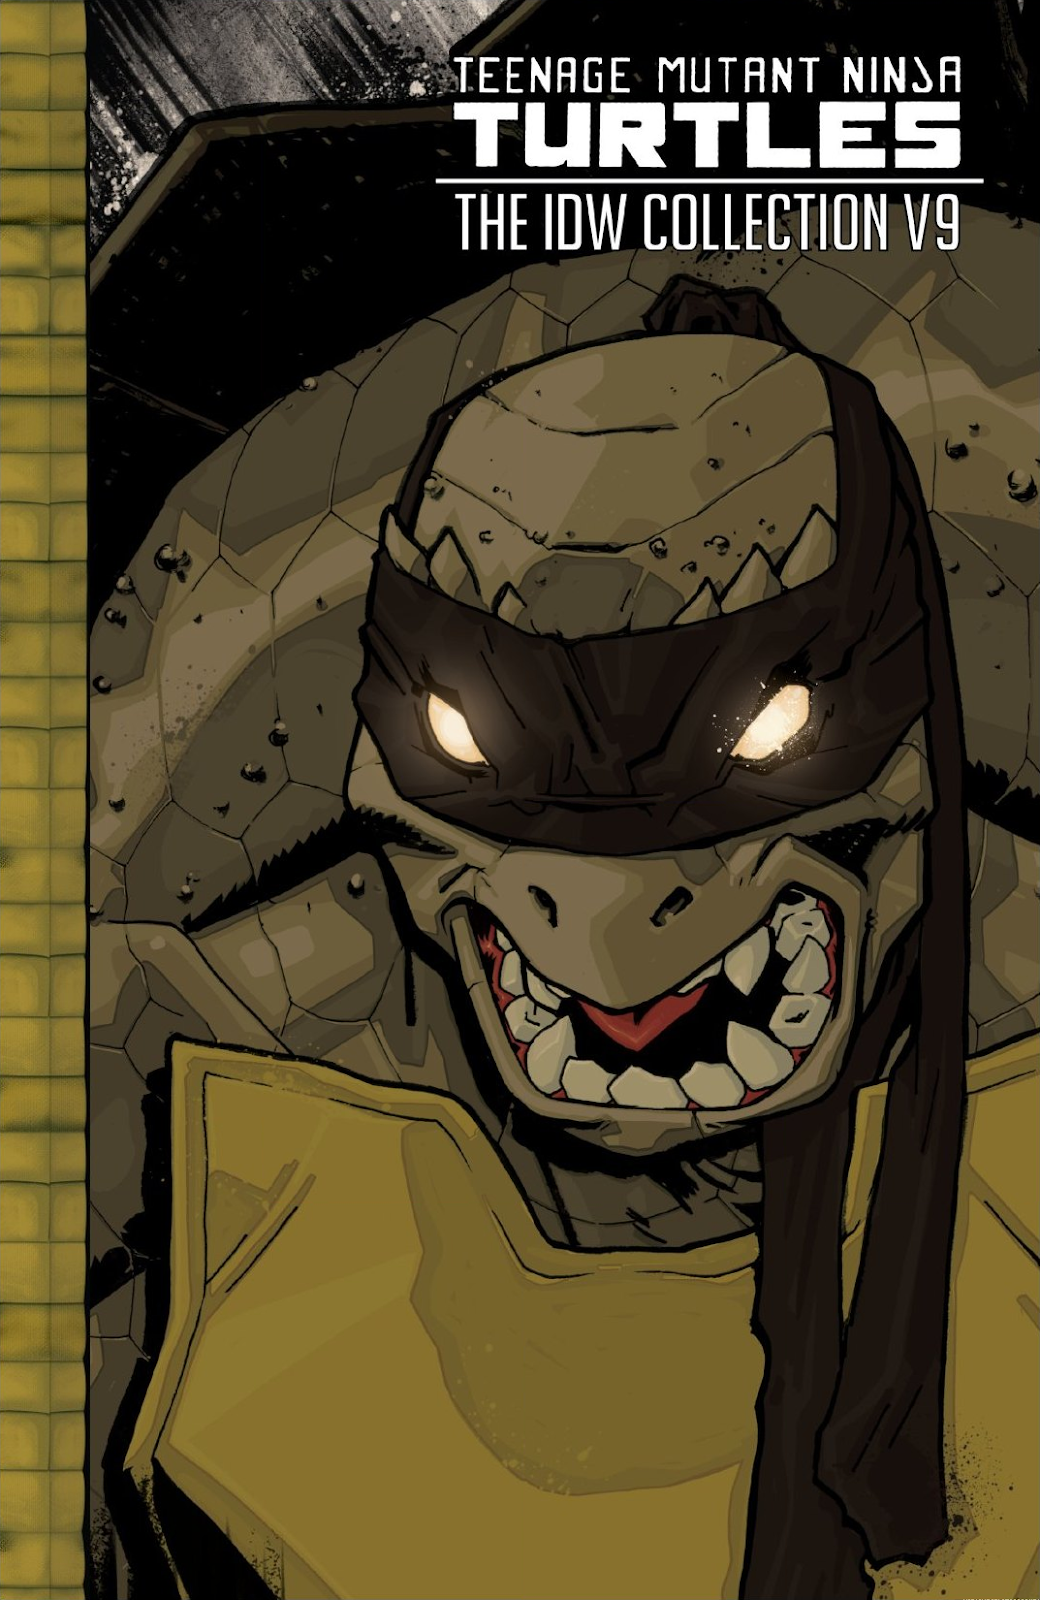 Read online Teenage Mutant Ninja Turtles: The IDW Collection comic -  Issue # TPB 9 (Part 1) - 1